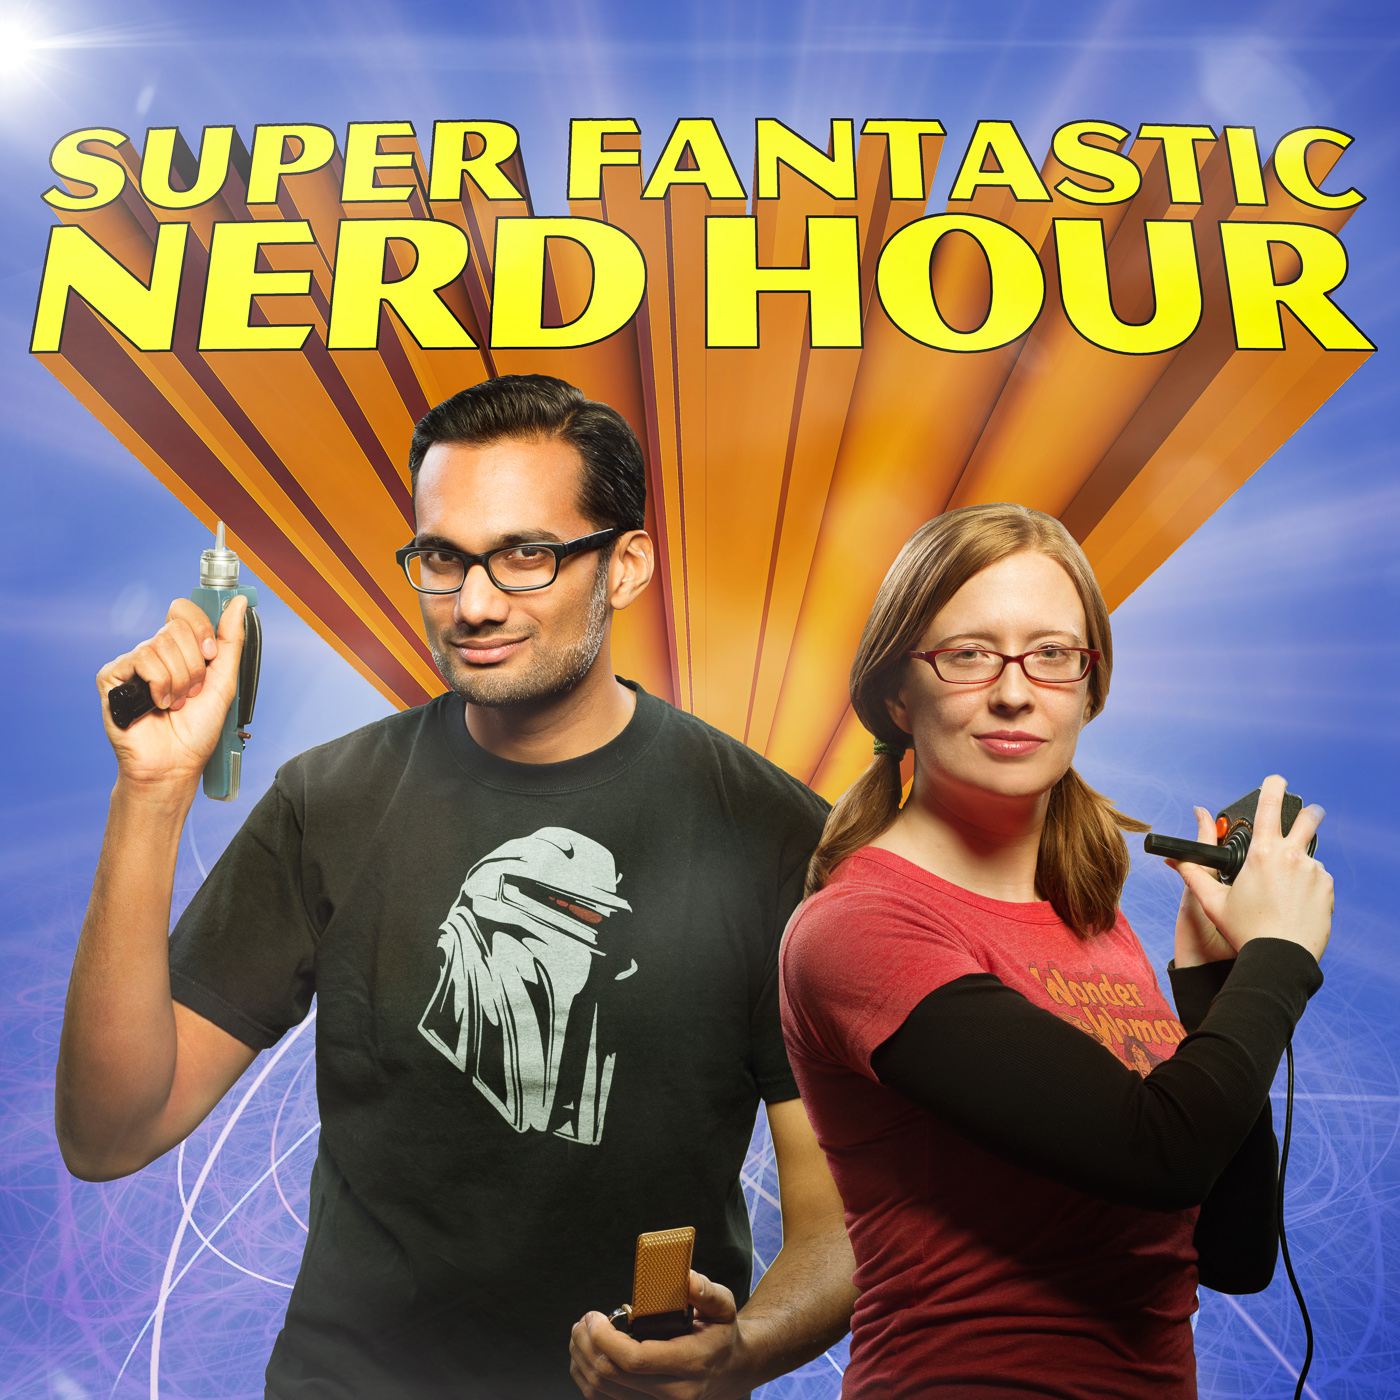 Episode 70: Ant-Man, Ant-Man VS. Honey, I Shrunk the Kids, Top 5 Animal Companions